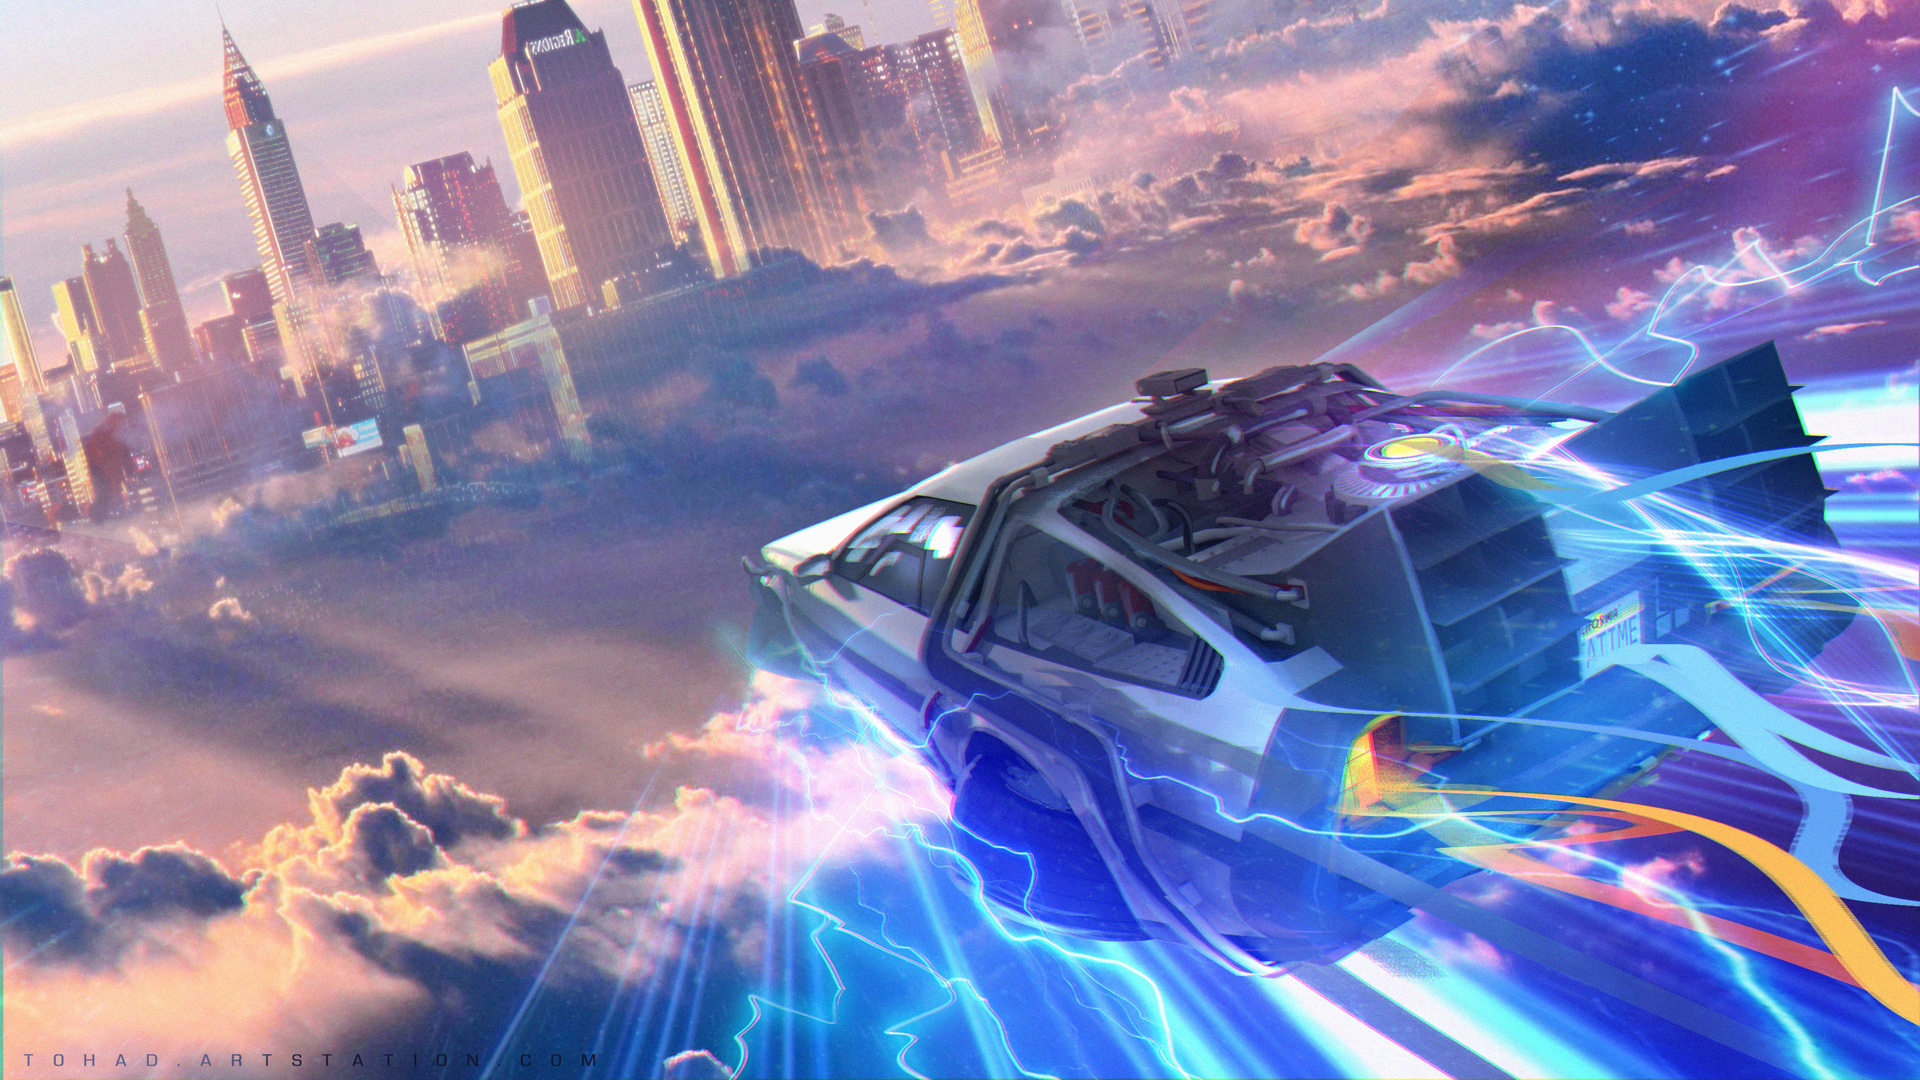 Back to the Future 4 : the journey by Tohad